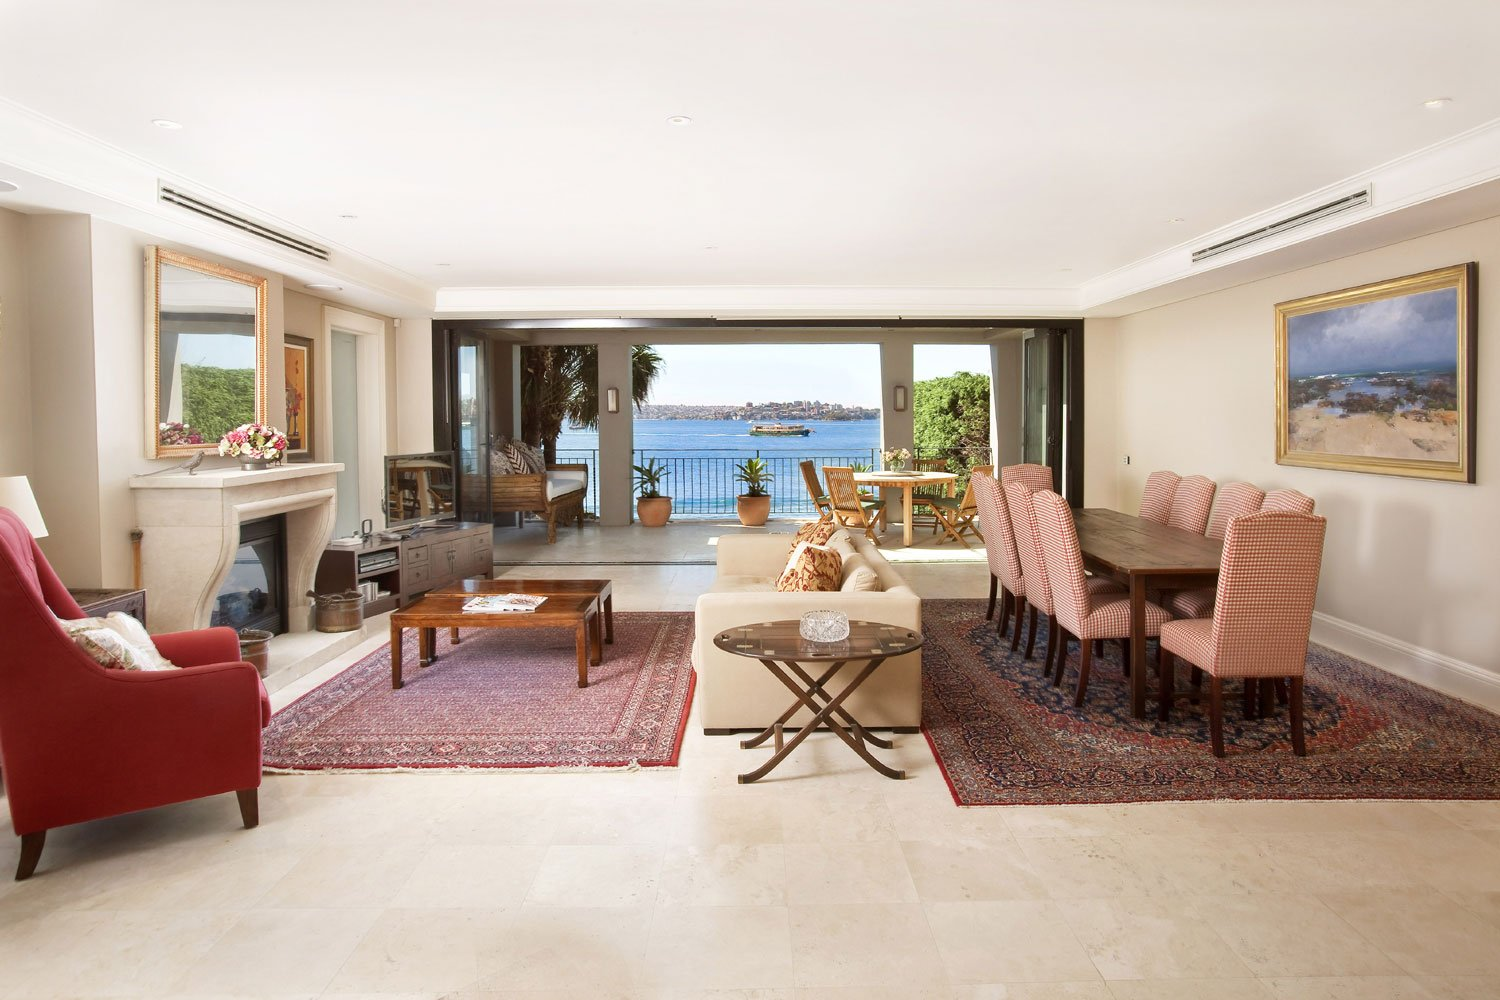 In Sydney, Australia, this home enjoys a prime waterfront position in one of the city's finest suburbs. It benefits from elegant living spaces and breathtaking Sydney Harbour views.